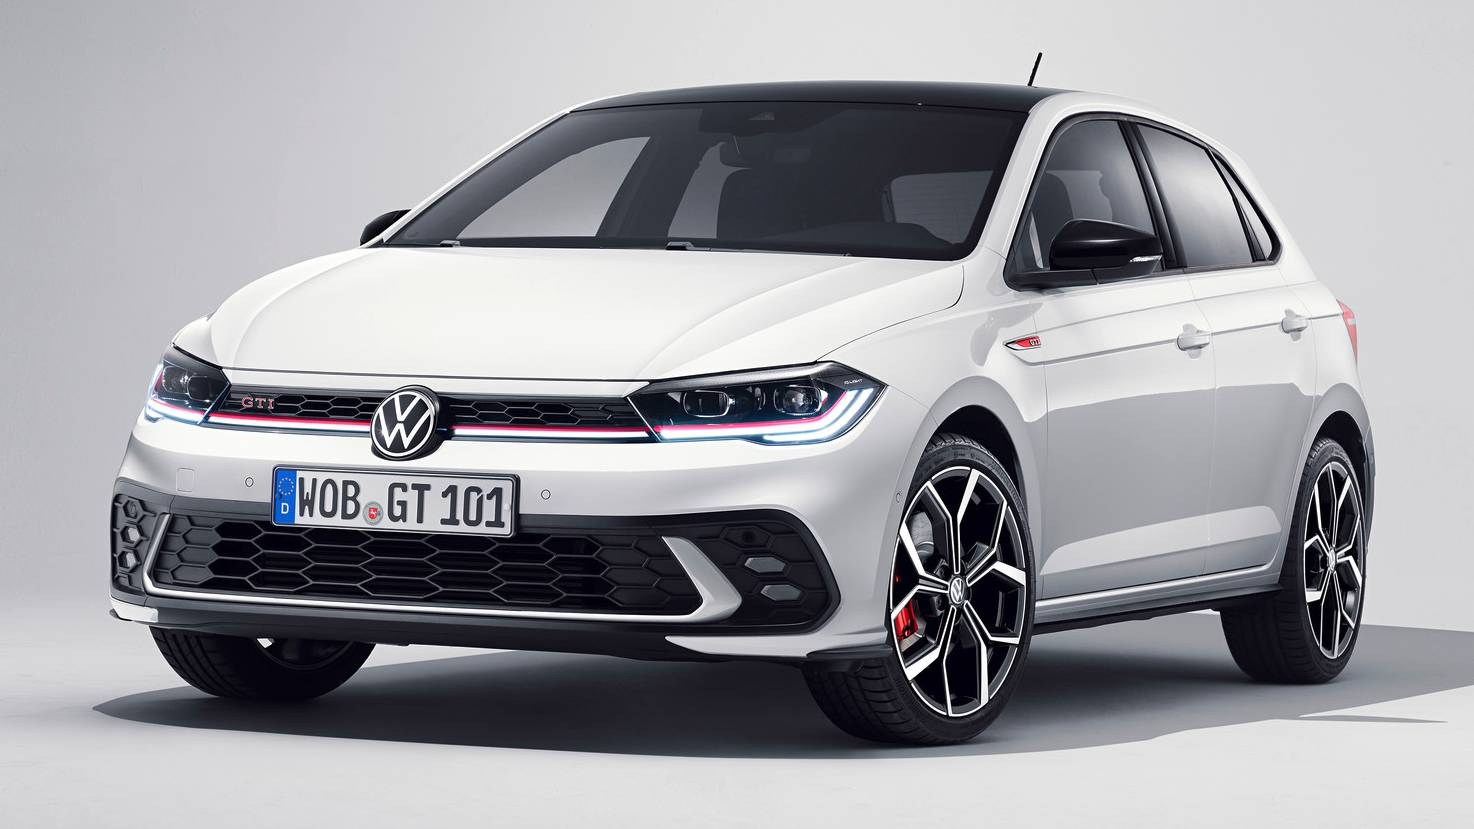 Volkswagen Polo GTI facelift makes world premiere, gets 207 hp engine and 7-speed DSG- Technology News, Firstpost